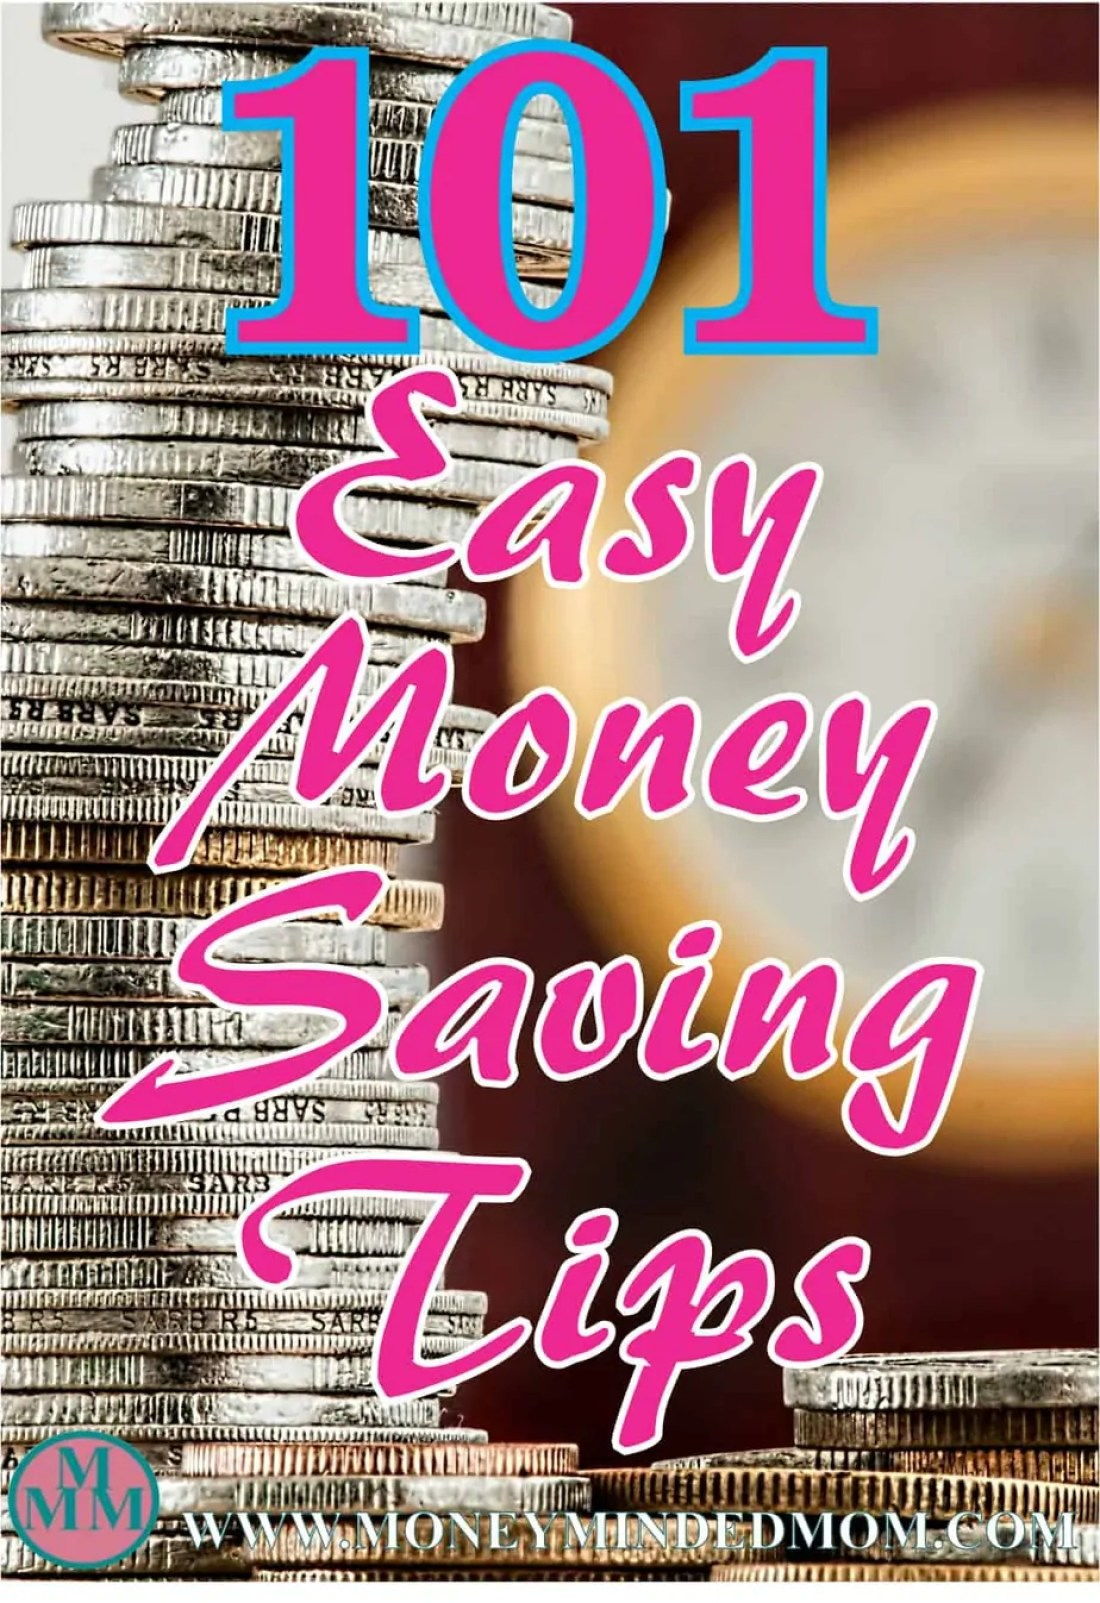 Saving money doesn't have to be so hard. There are plenty of small things you can do that will add up to big savings. Read 101 Easy Money Savings Tips to find out how.